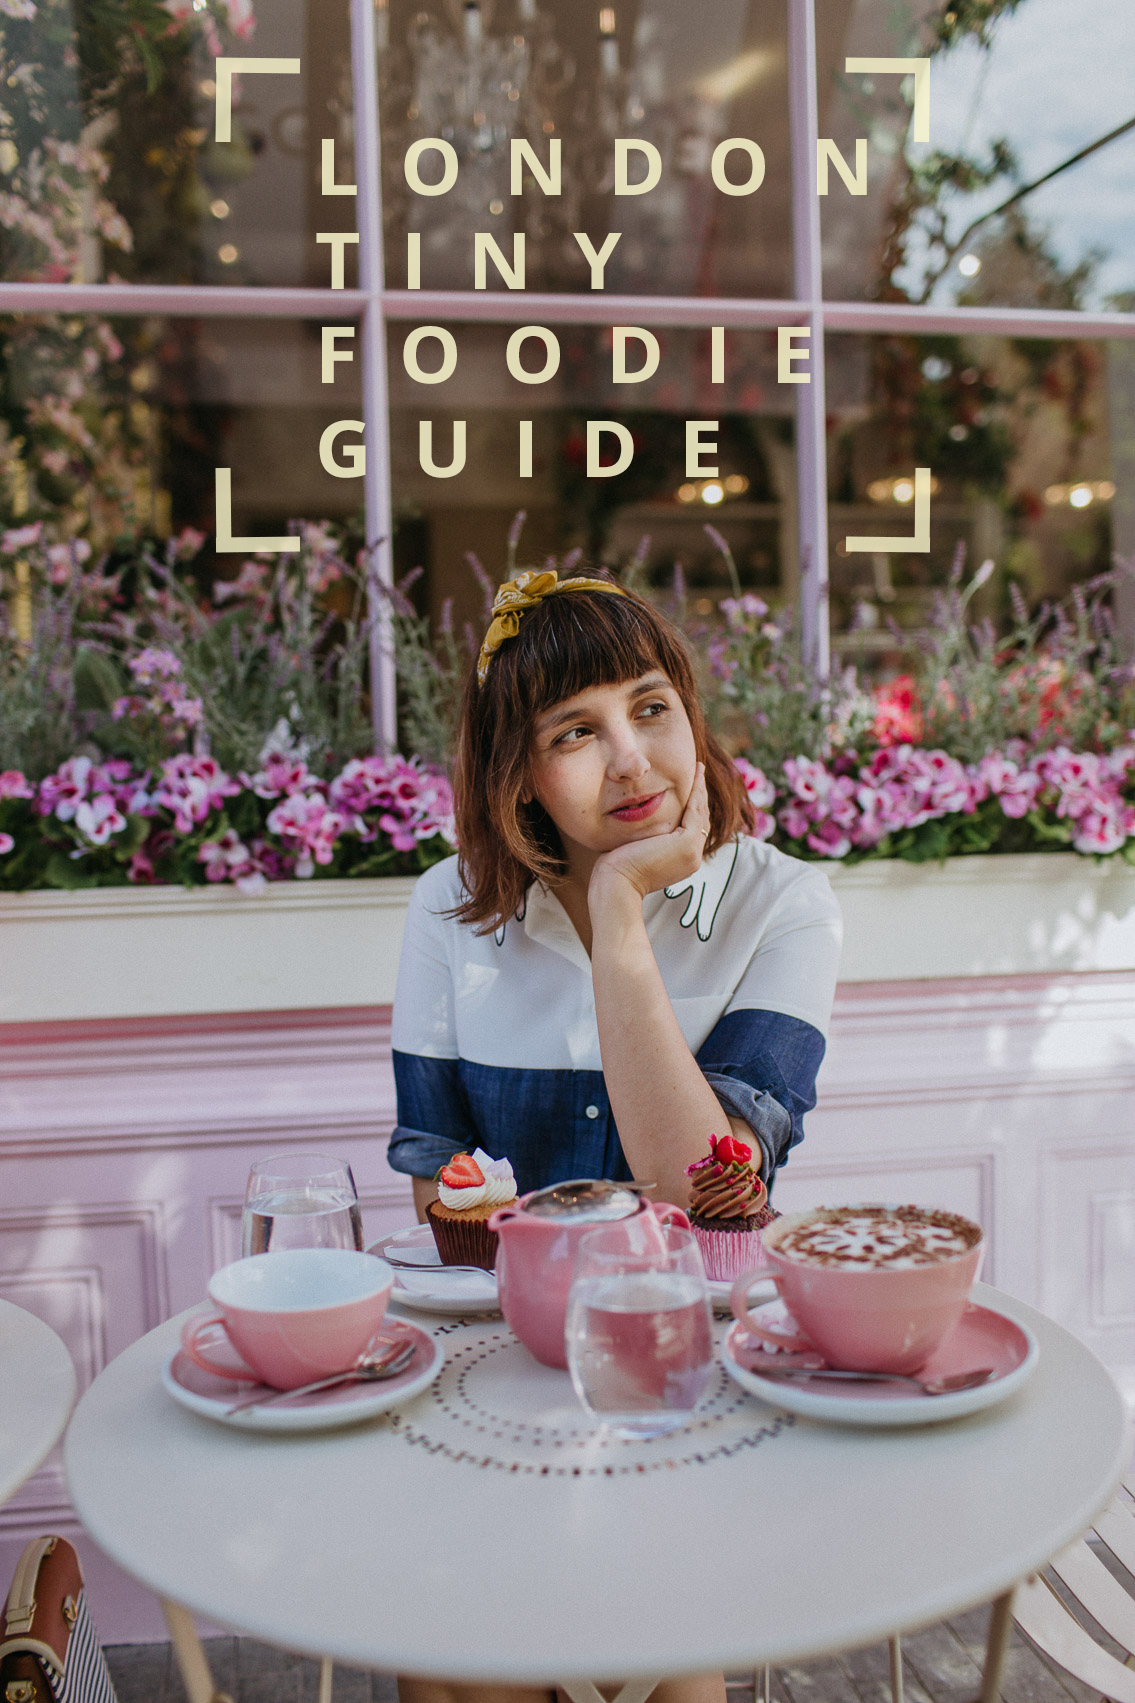 London tiny foodie guide - The cat, you and us